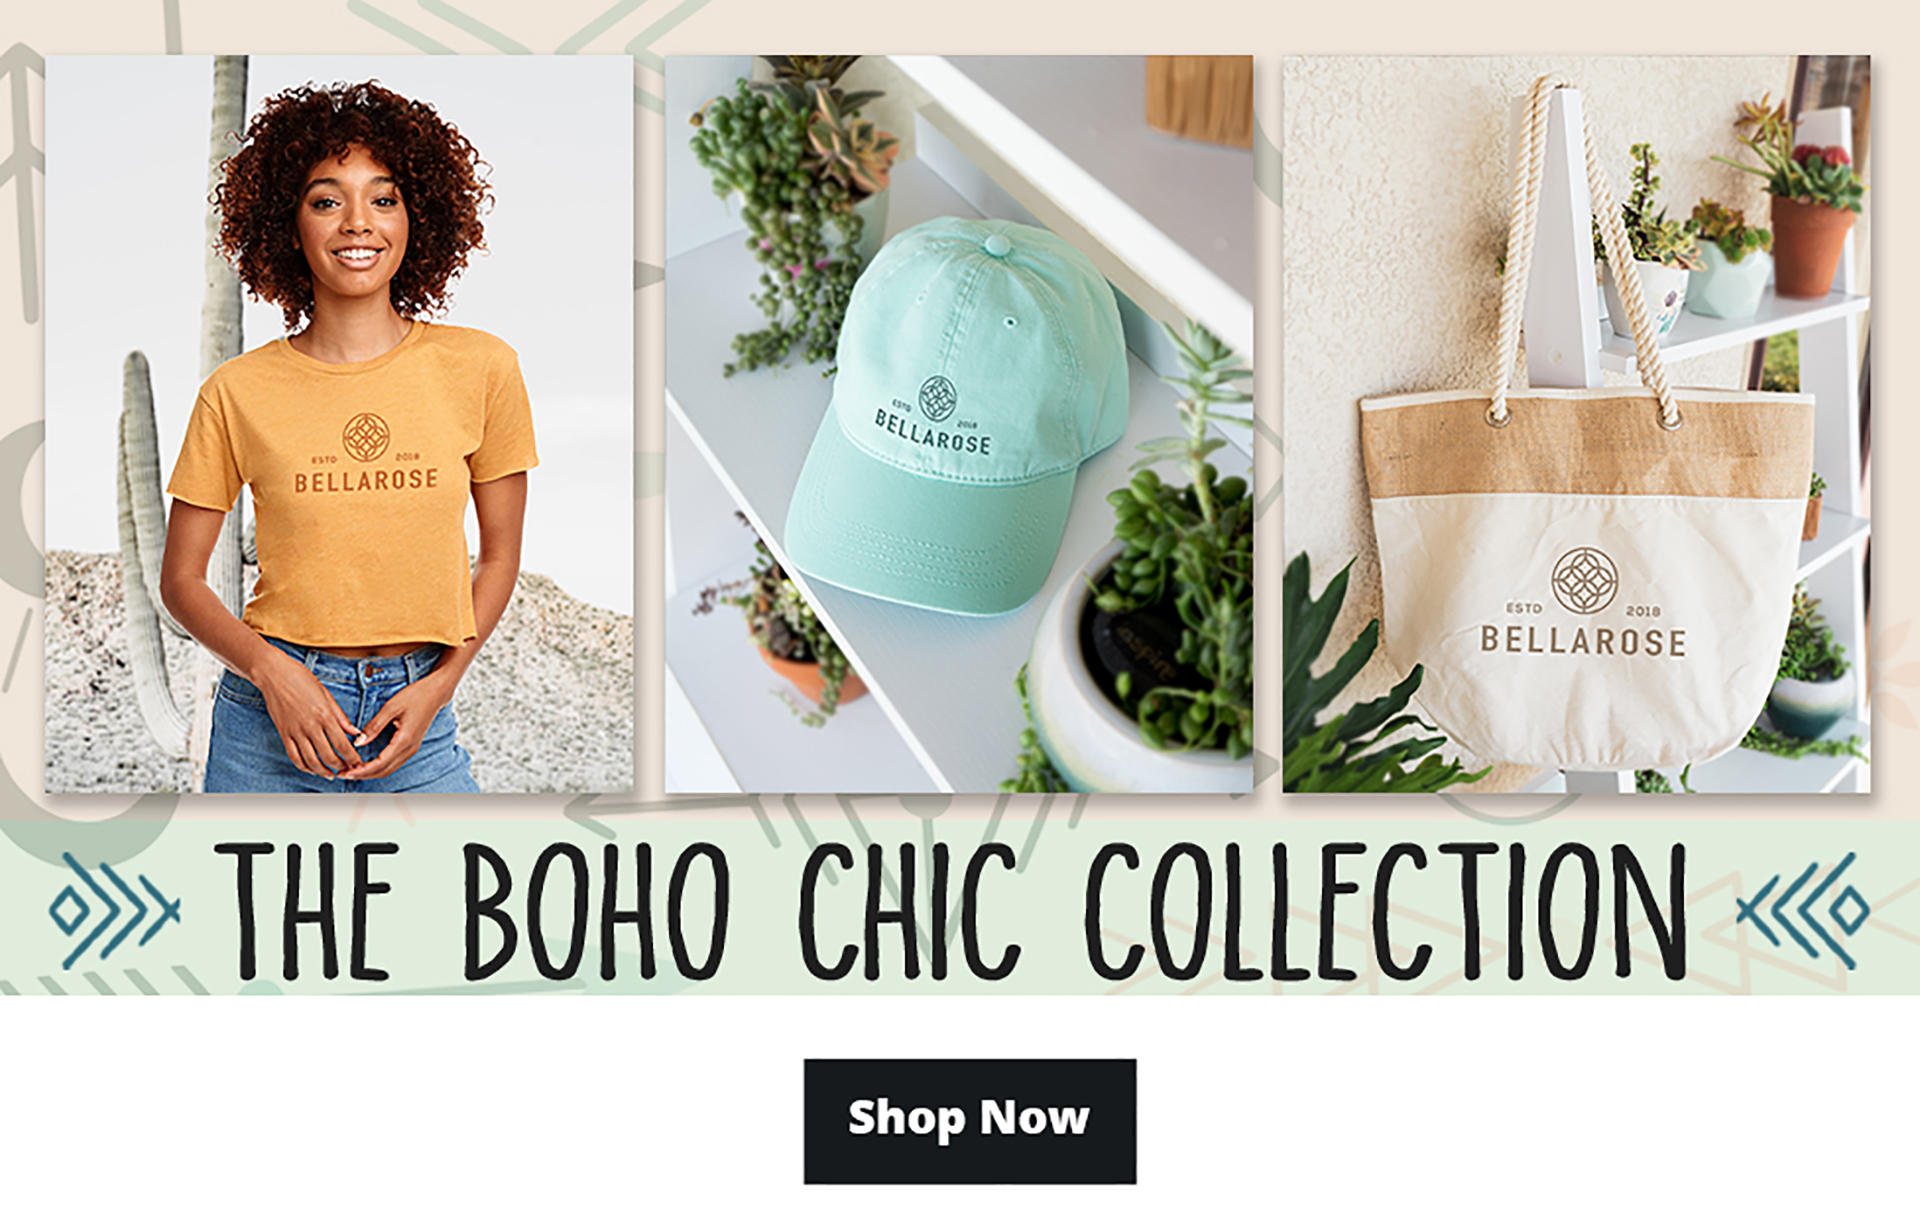 BOHO Chic Collection Collection Promotional Email Web Version